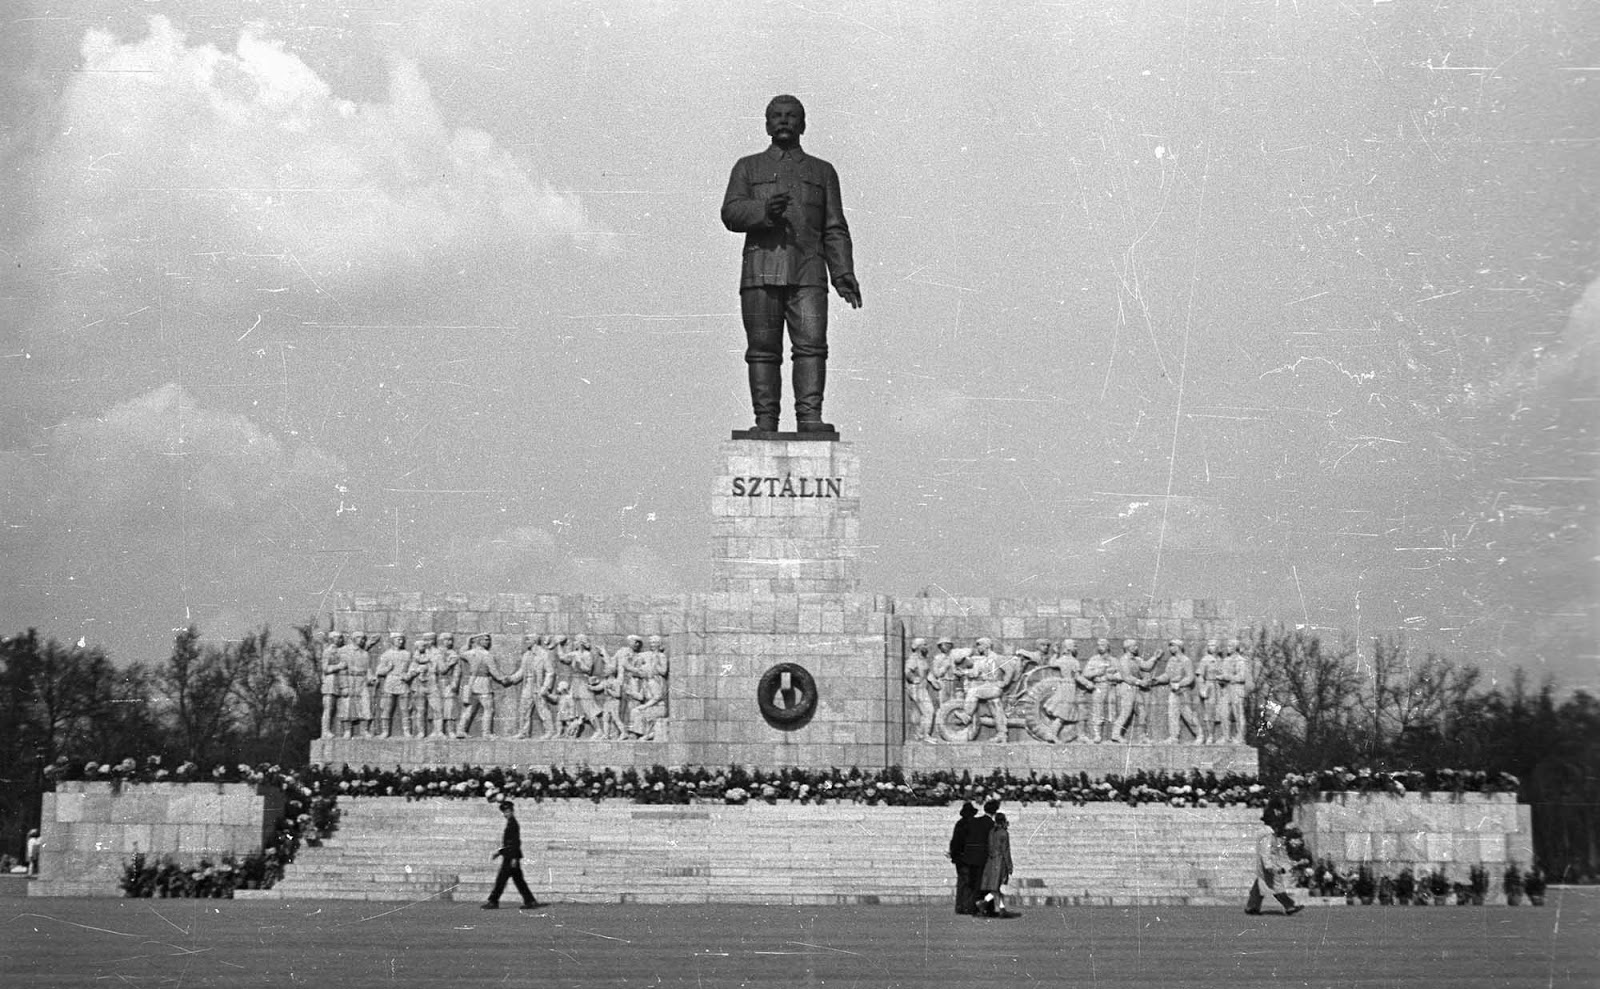 The large monument stood 25 metres tall in total. The monument not only demonstrated Stalin's power, but the power of the Hungarian Working People's Party as well.